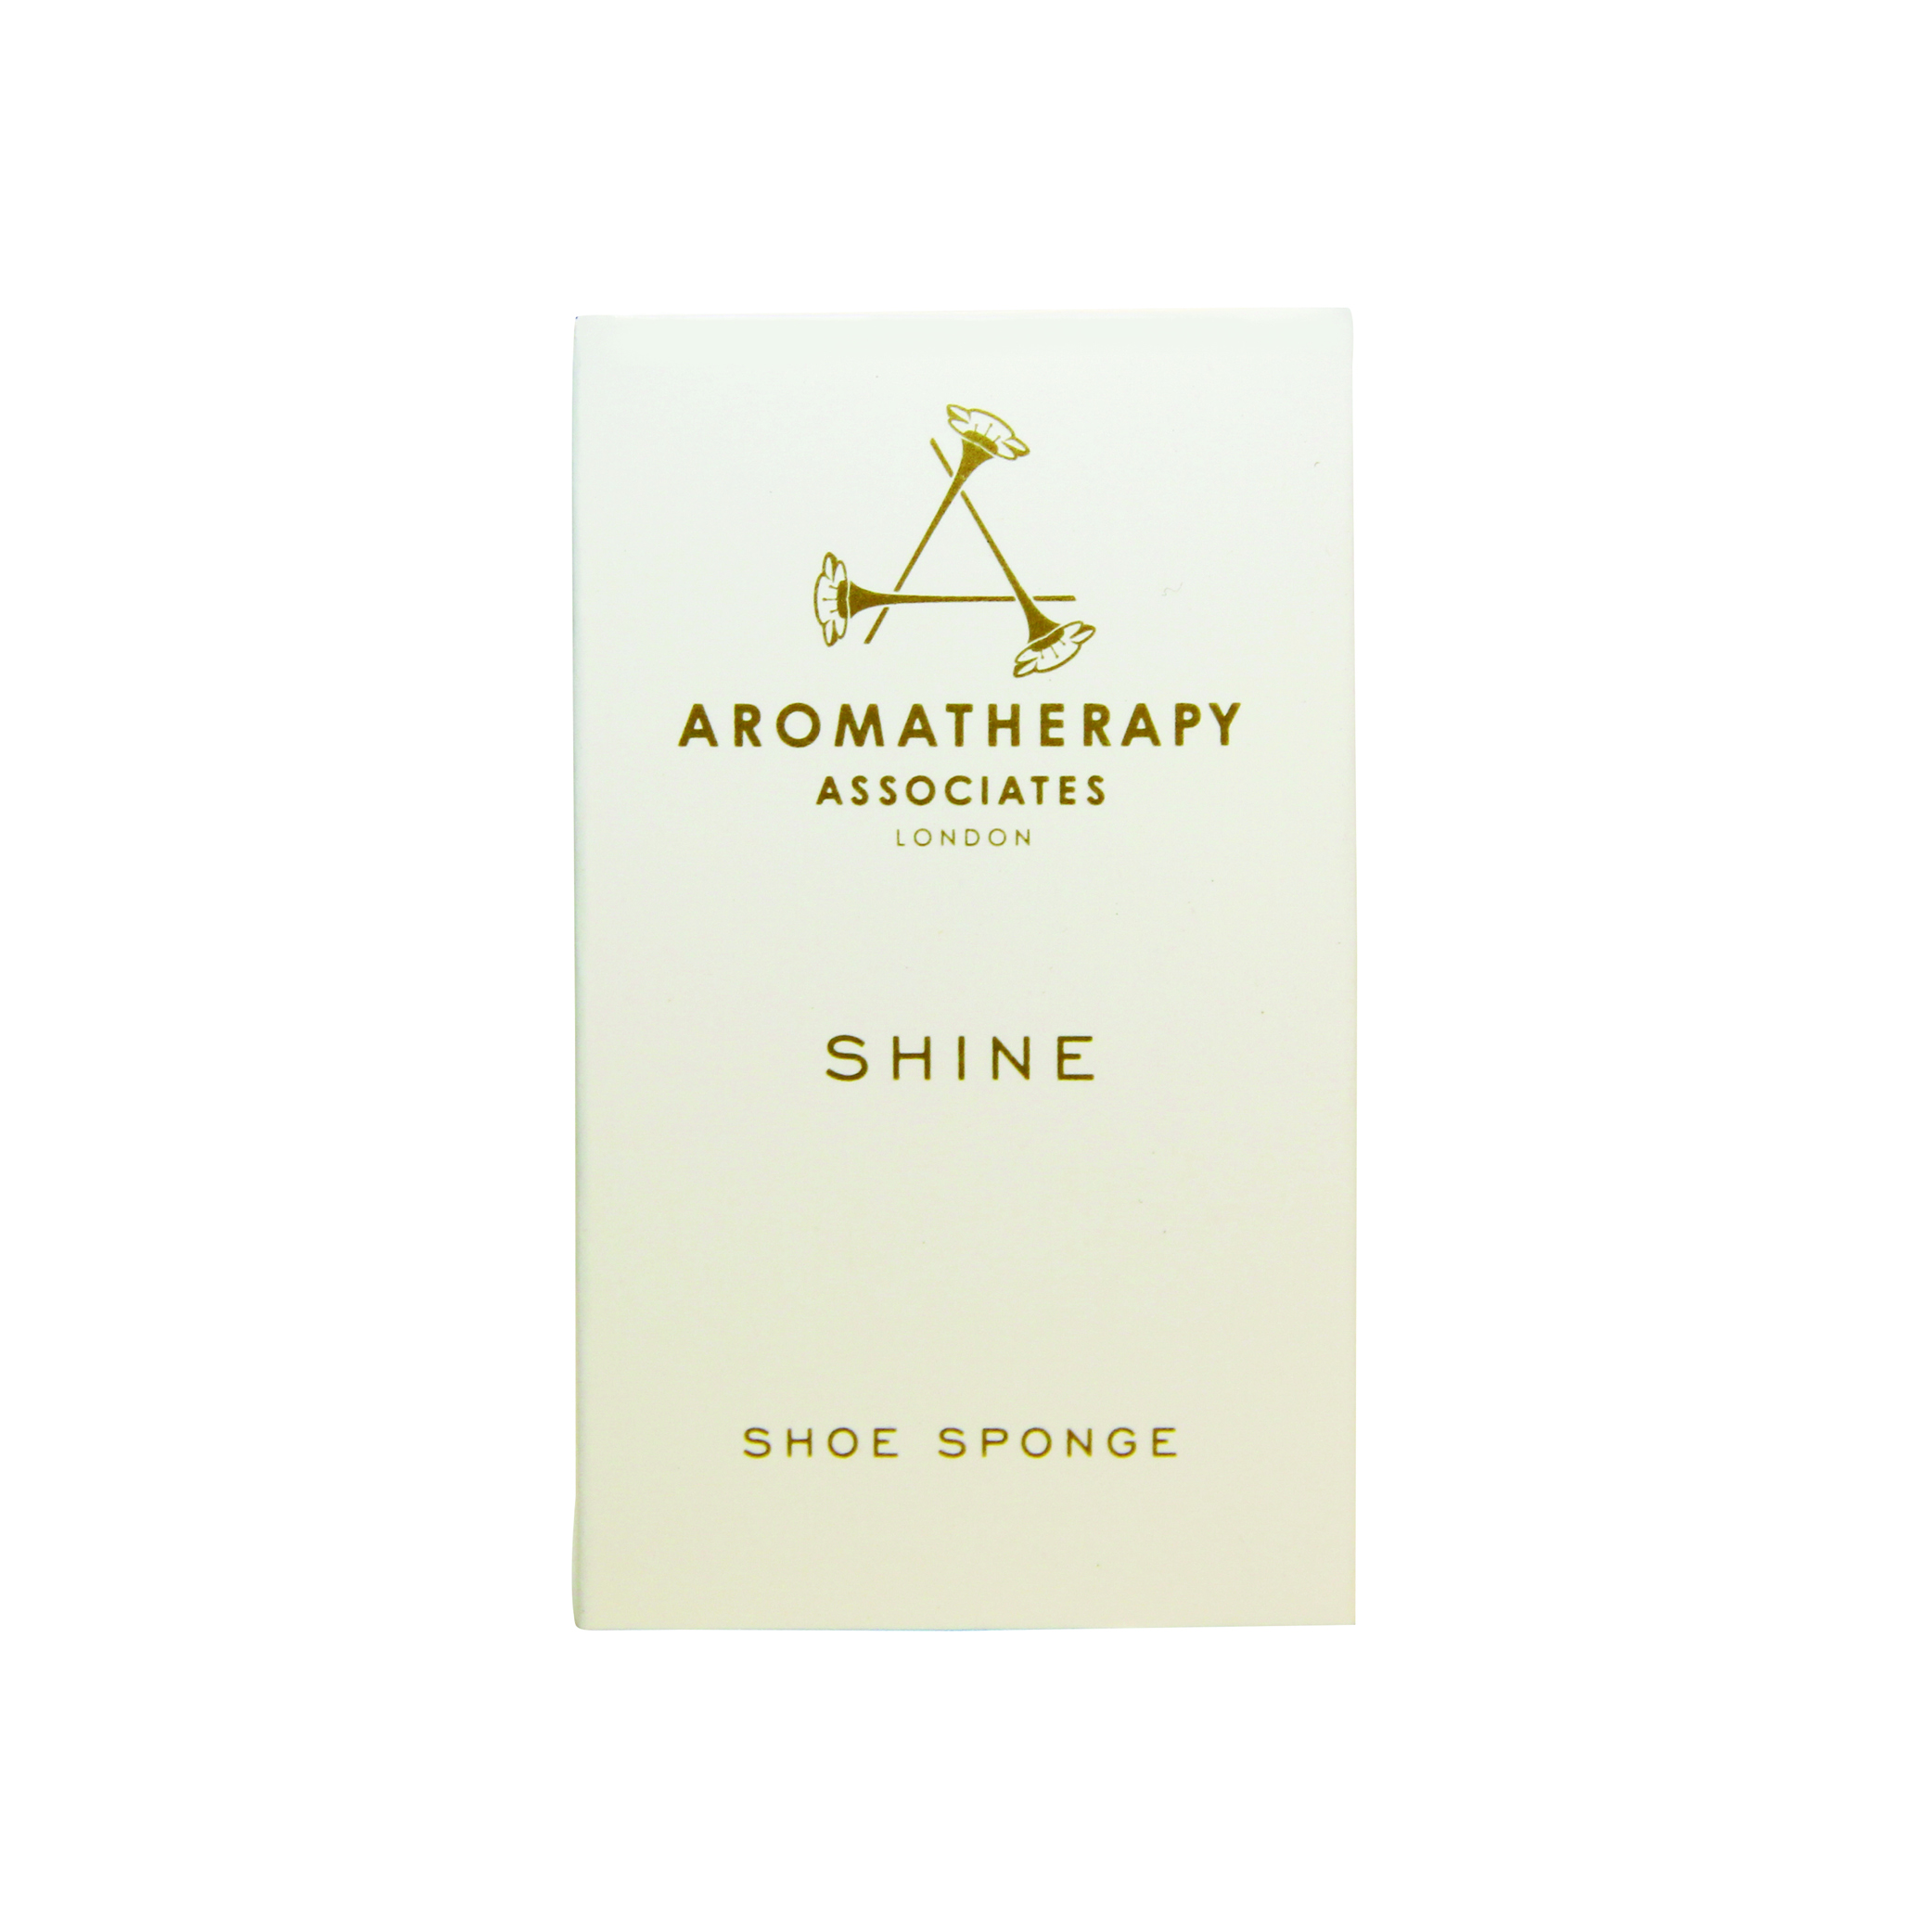 Aromatherapy Associates Premium Shoe Polisher